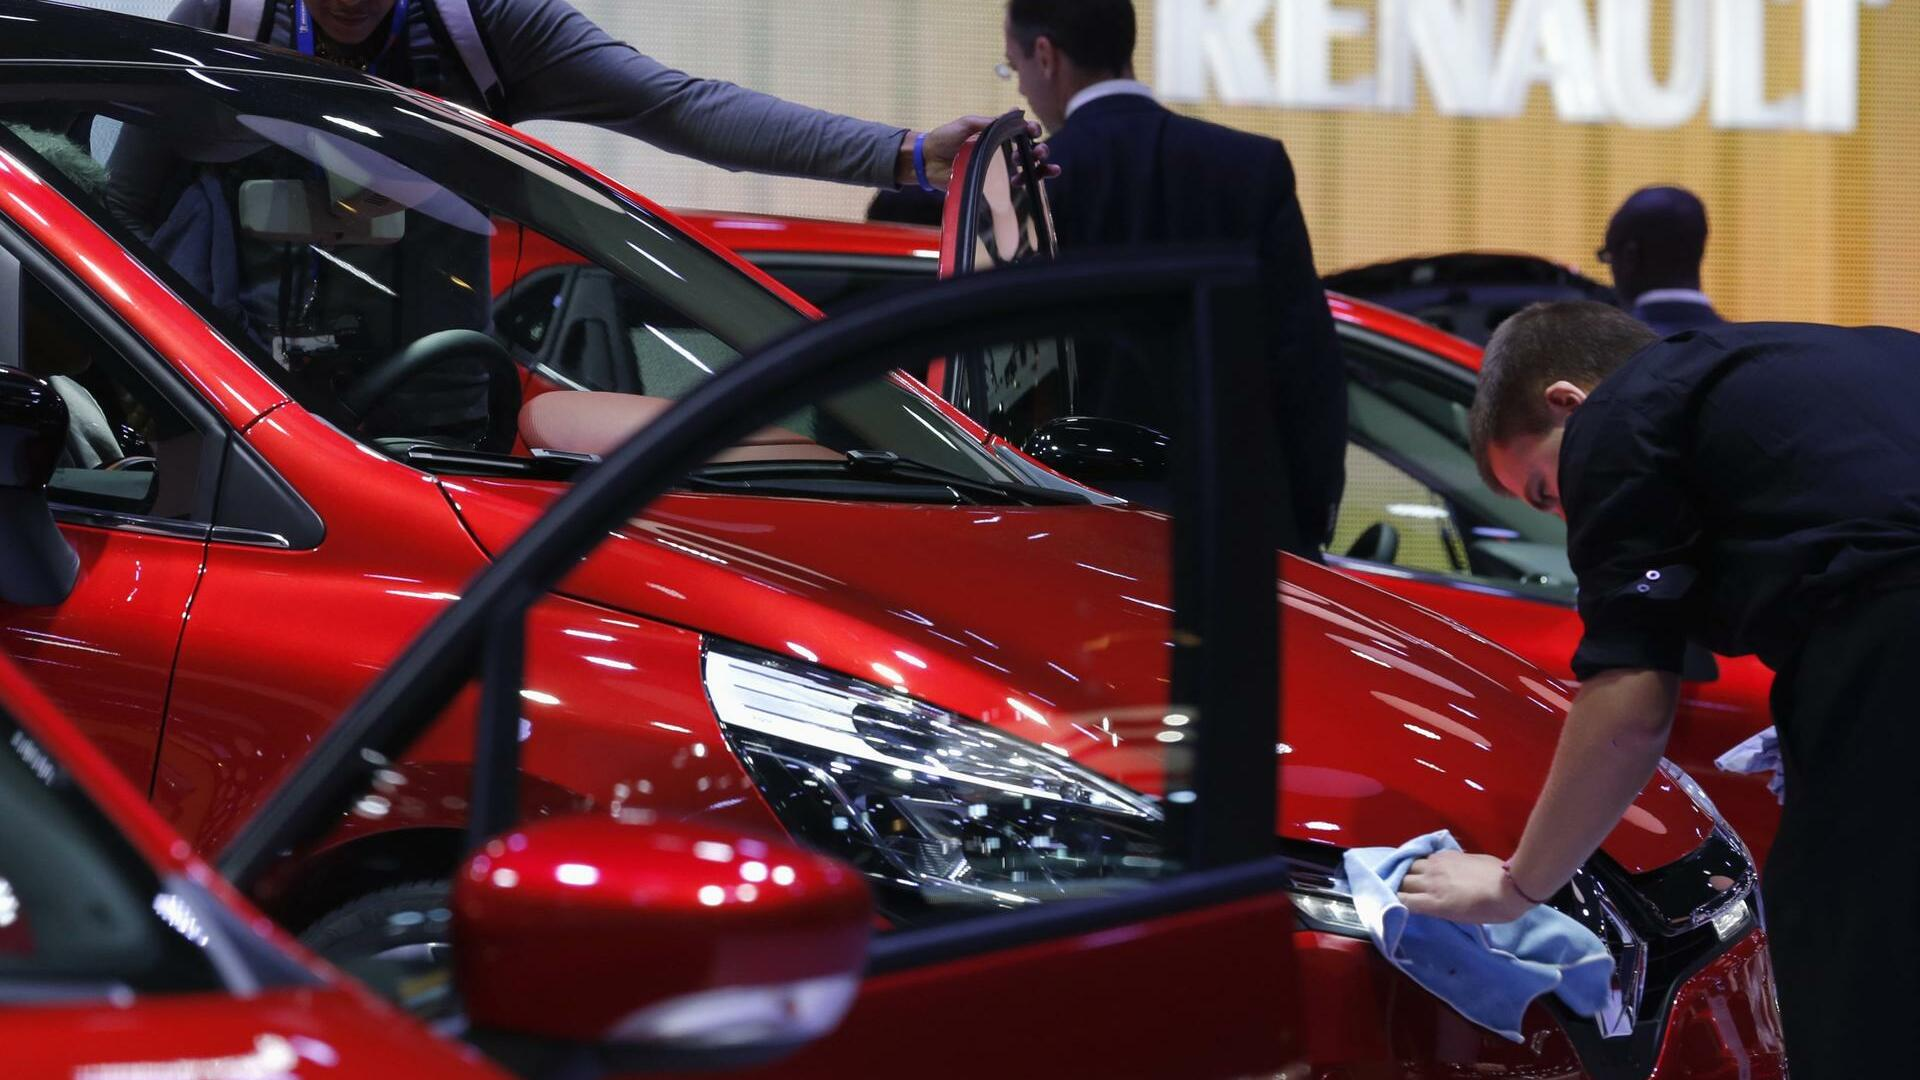 People visit the Renault showcase on media day at the Paris Mondial de l'Automobile Quelle: REUTERS